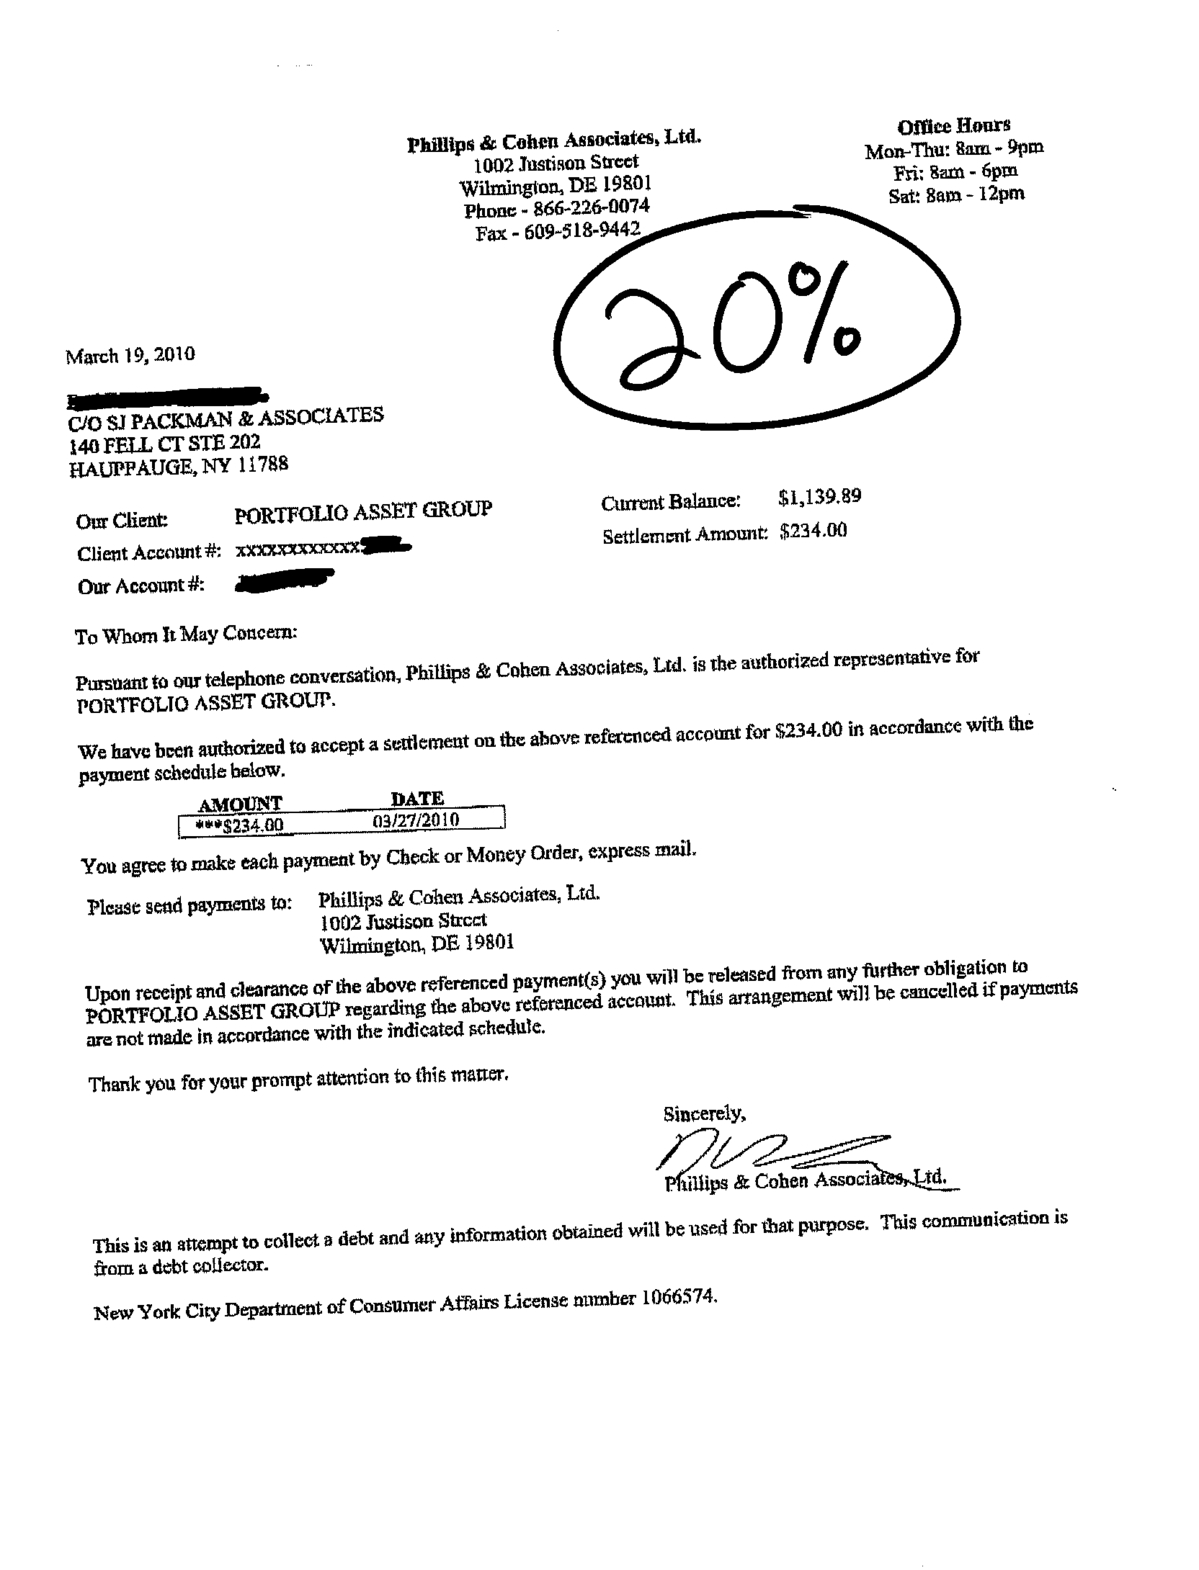 Debt Settlement Letter Sles Pdf   Images  Picture  Of  Debt